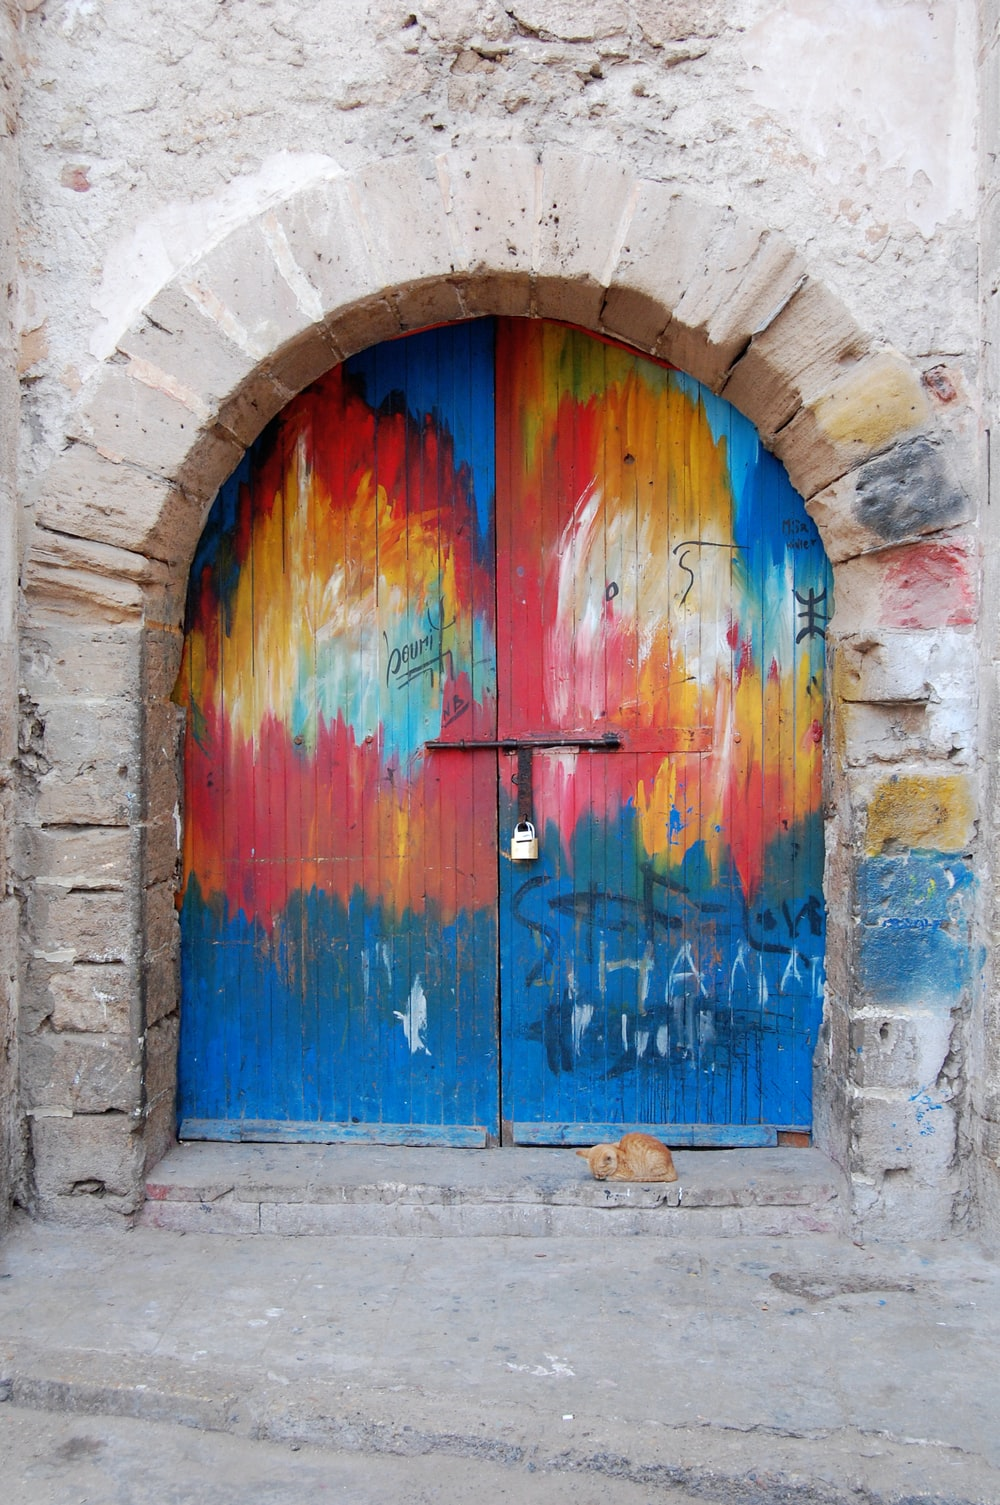 A colorfully painted rounded door.